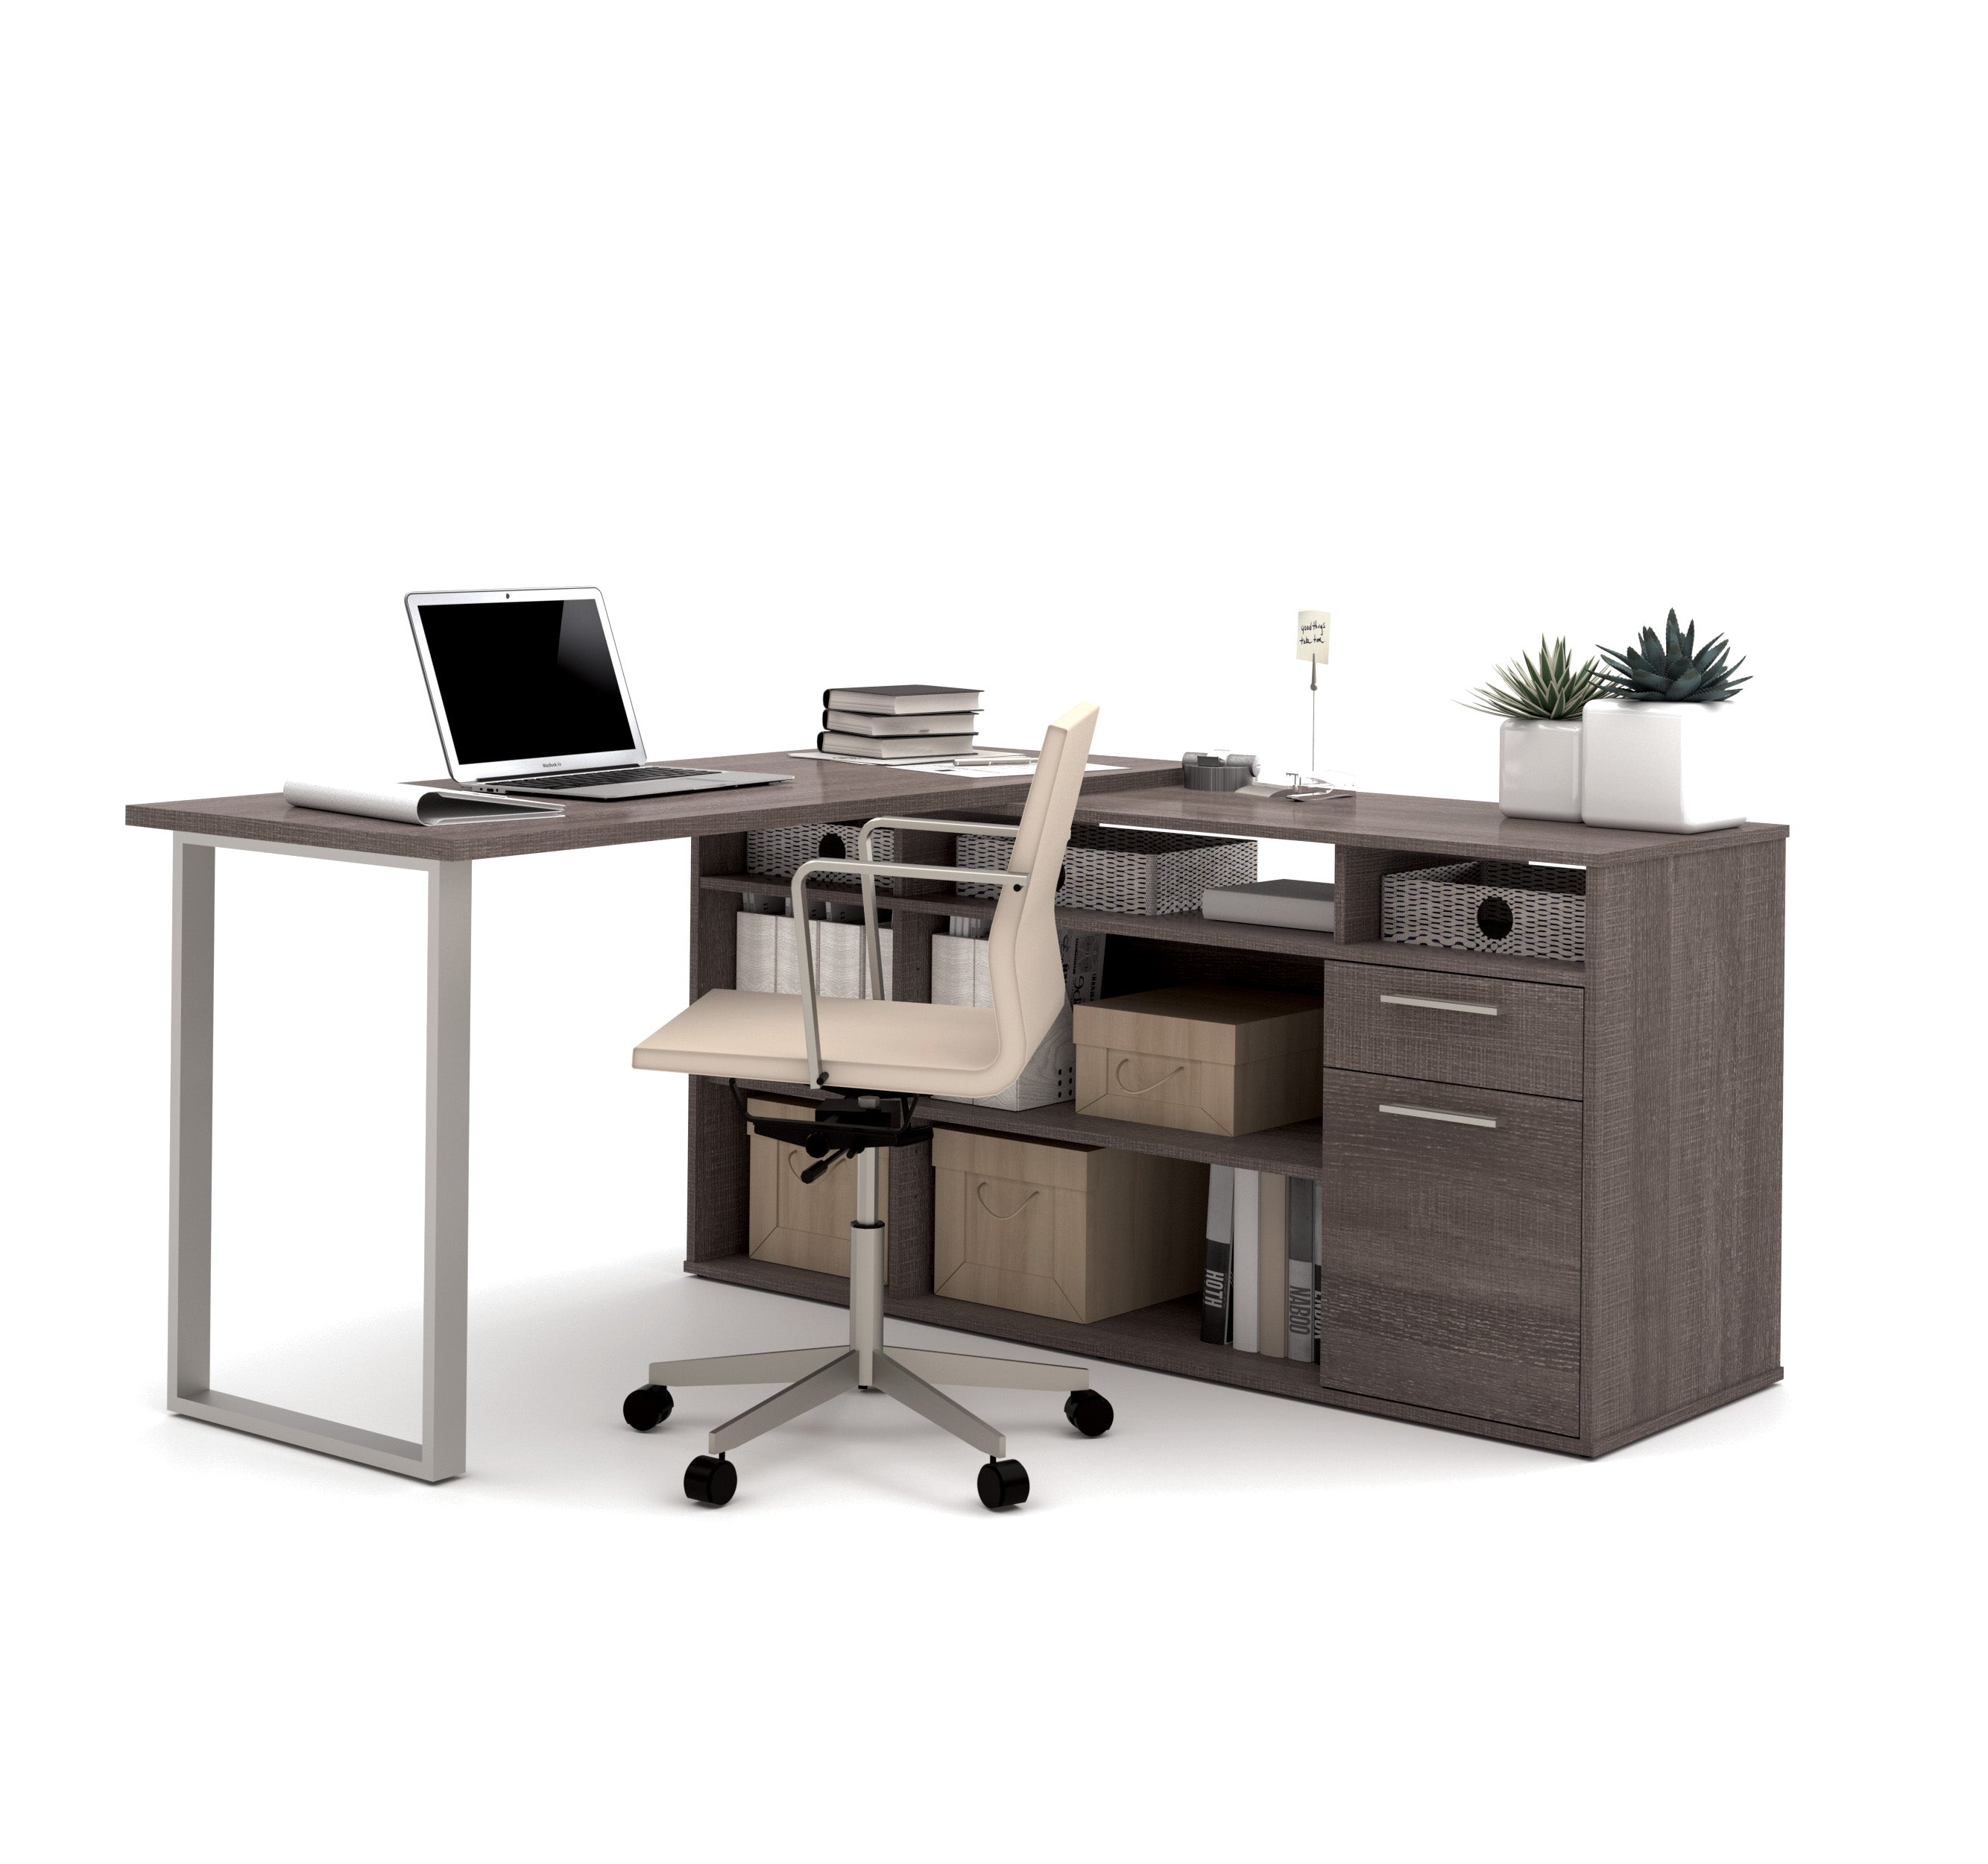 shaped latest home desk new design princeton com closet kmart affordable for pf art what house is of l arafen interior office images designer desingers an homes espresso ideas